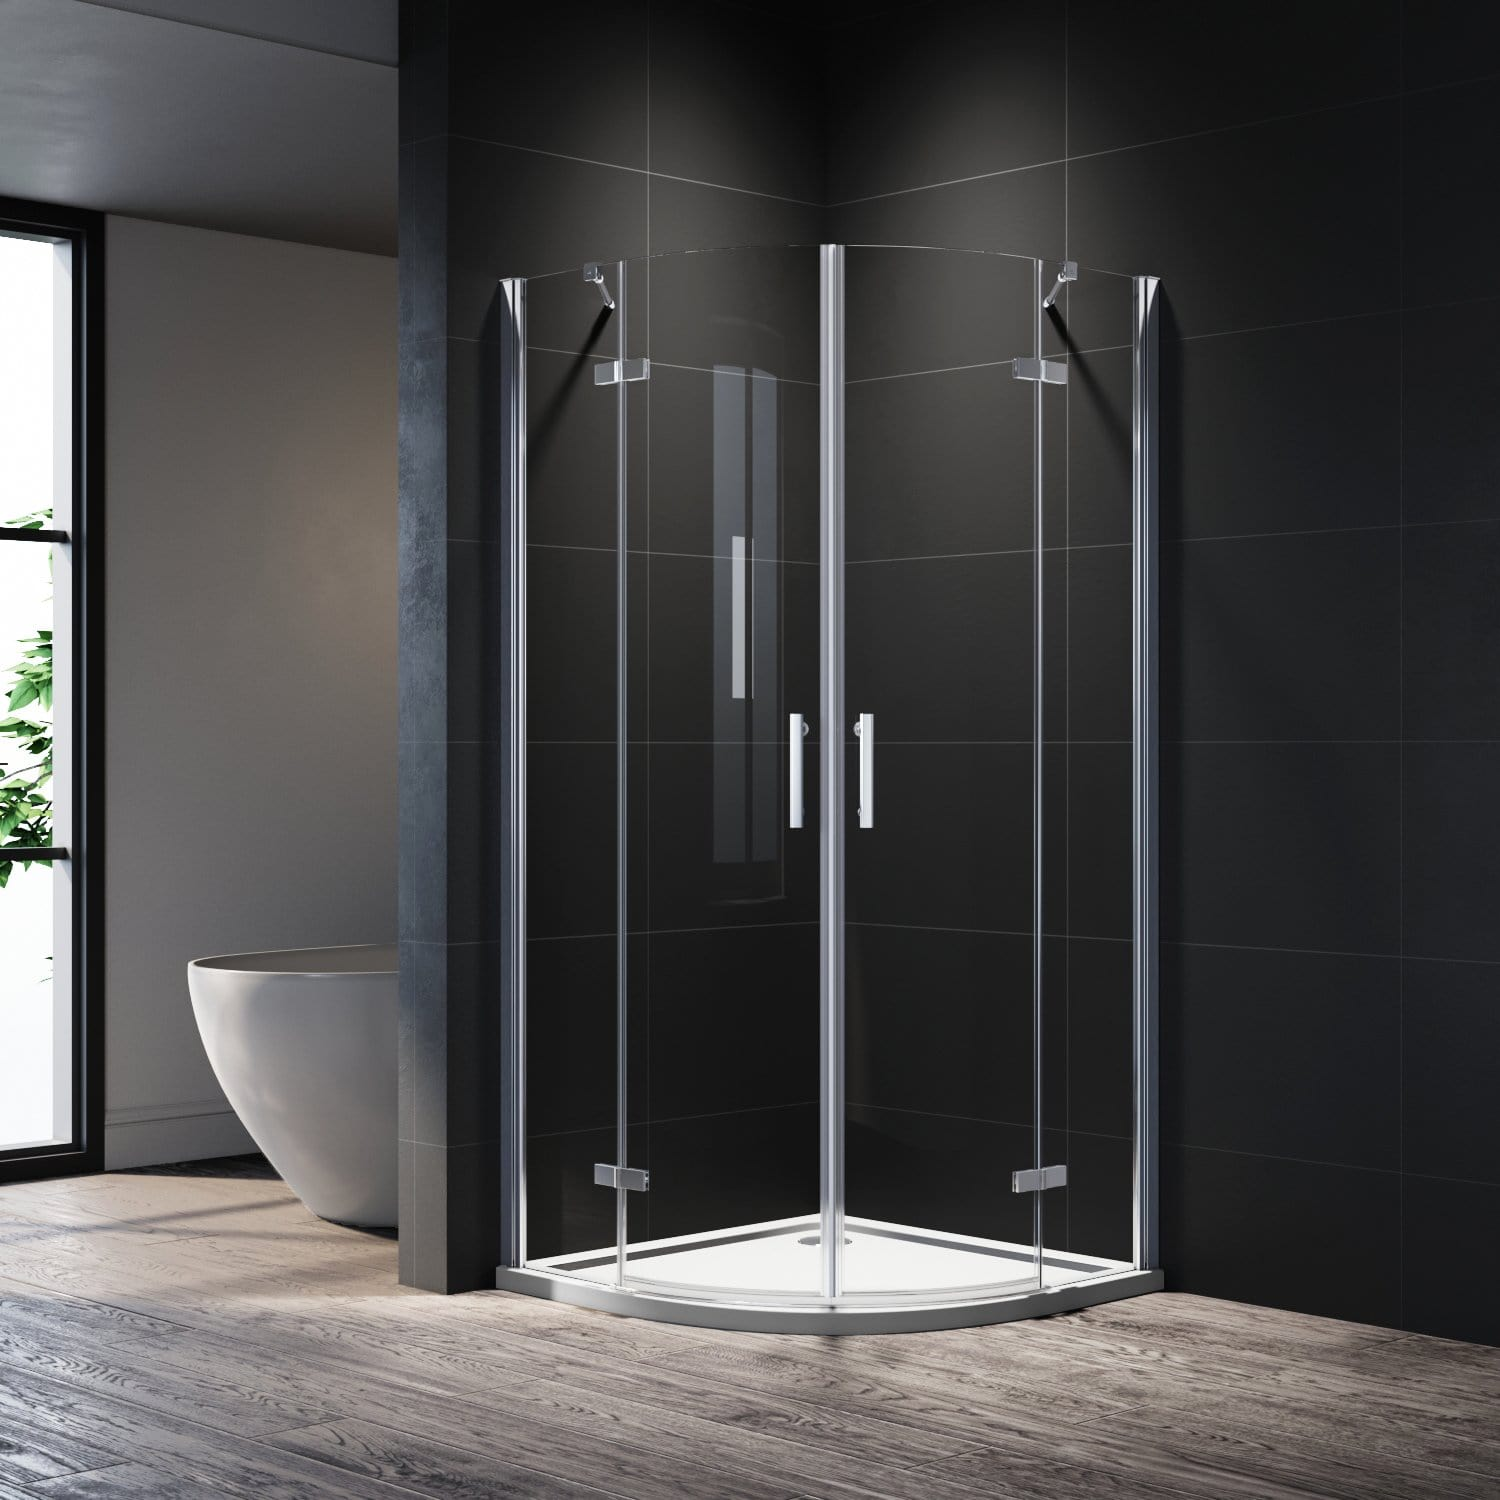 ELEGANT Frameless Curved Shower Enclosure Quadrant Cubicle Hinge doors 6mm Tempered Glass Nano Coating Easy to clean 900x900mm - Elegantshowers